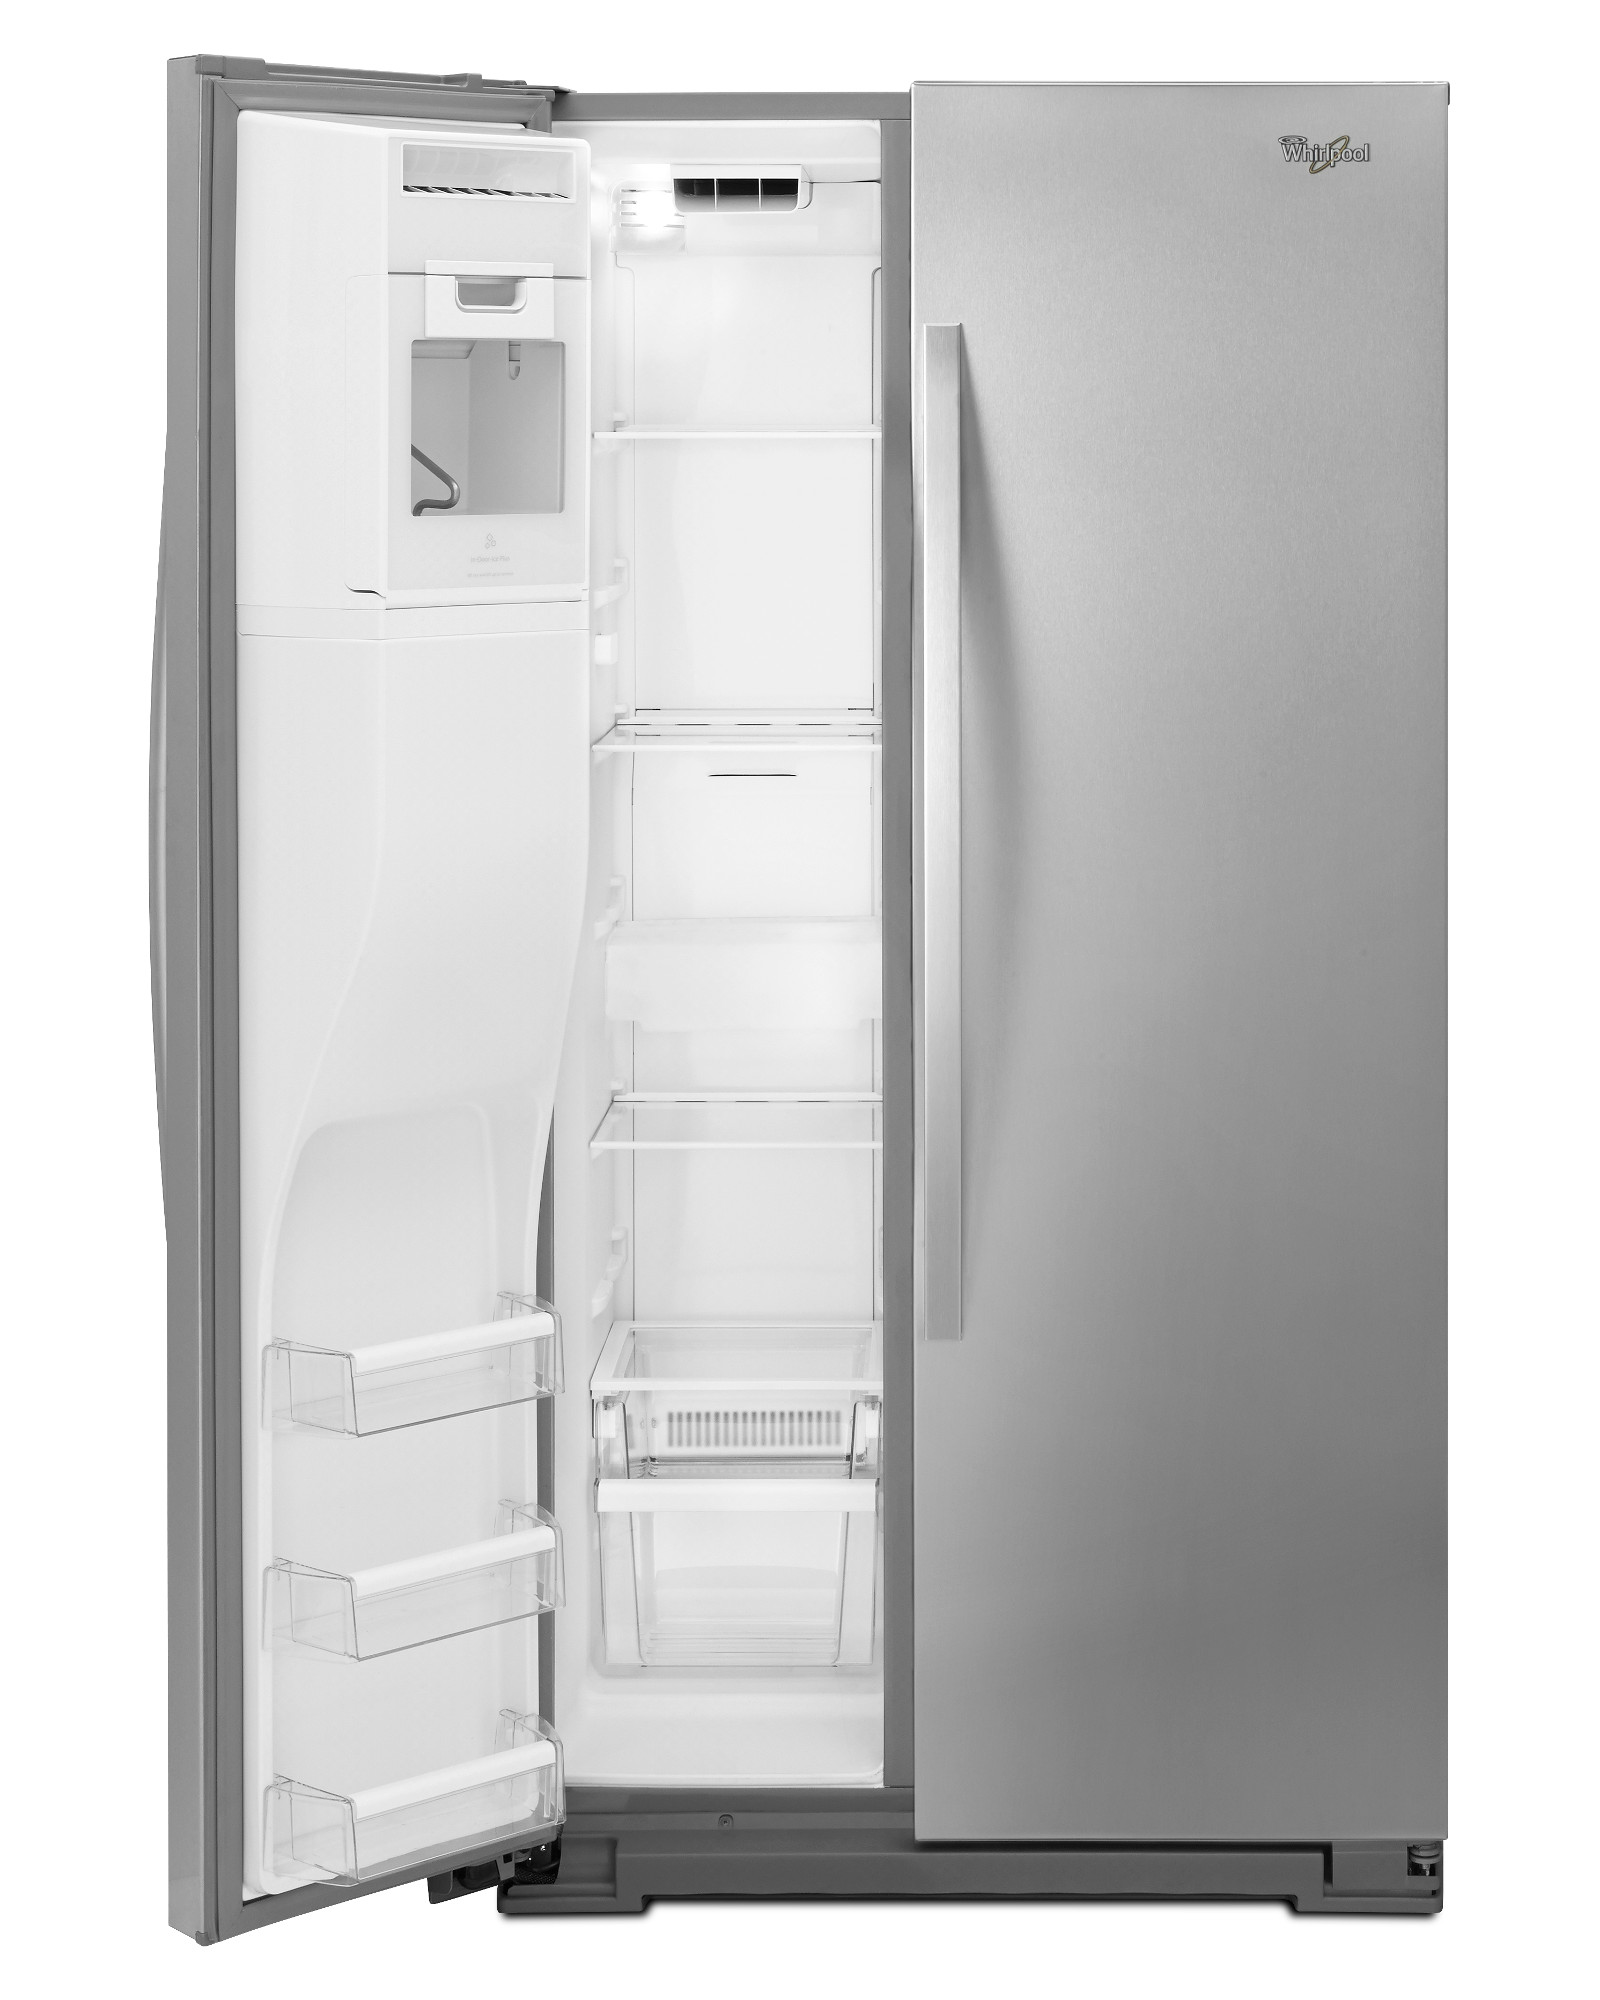 Whirlpool 25.6 cu. ft. Side-by-Side Refrigerator - Stainless Steel